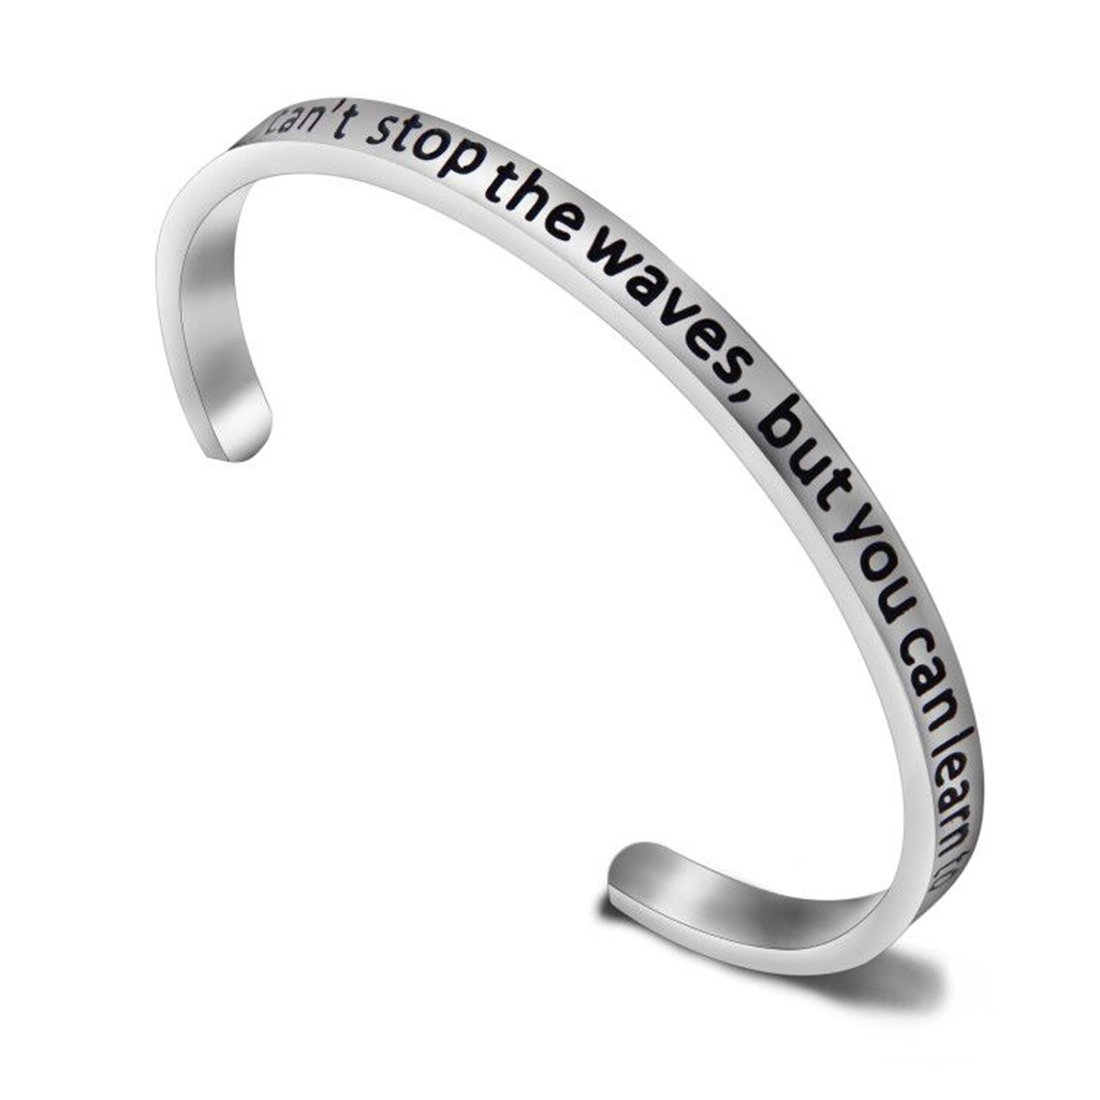 Zuo Bao Wave Ocean Cuff Bracelet You Can't Stop the Waves,But You Can Learn to Surf Beach Jewelry Gift For Her (Bangle)